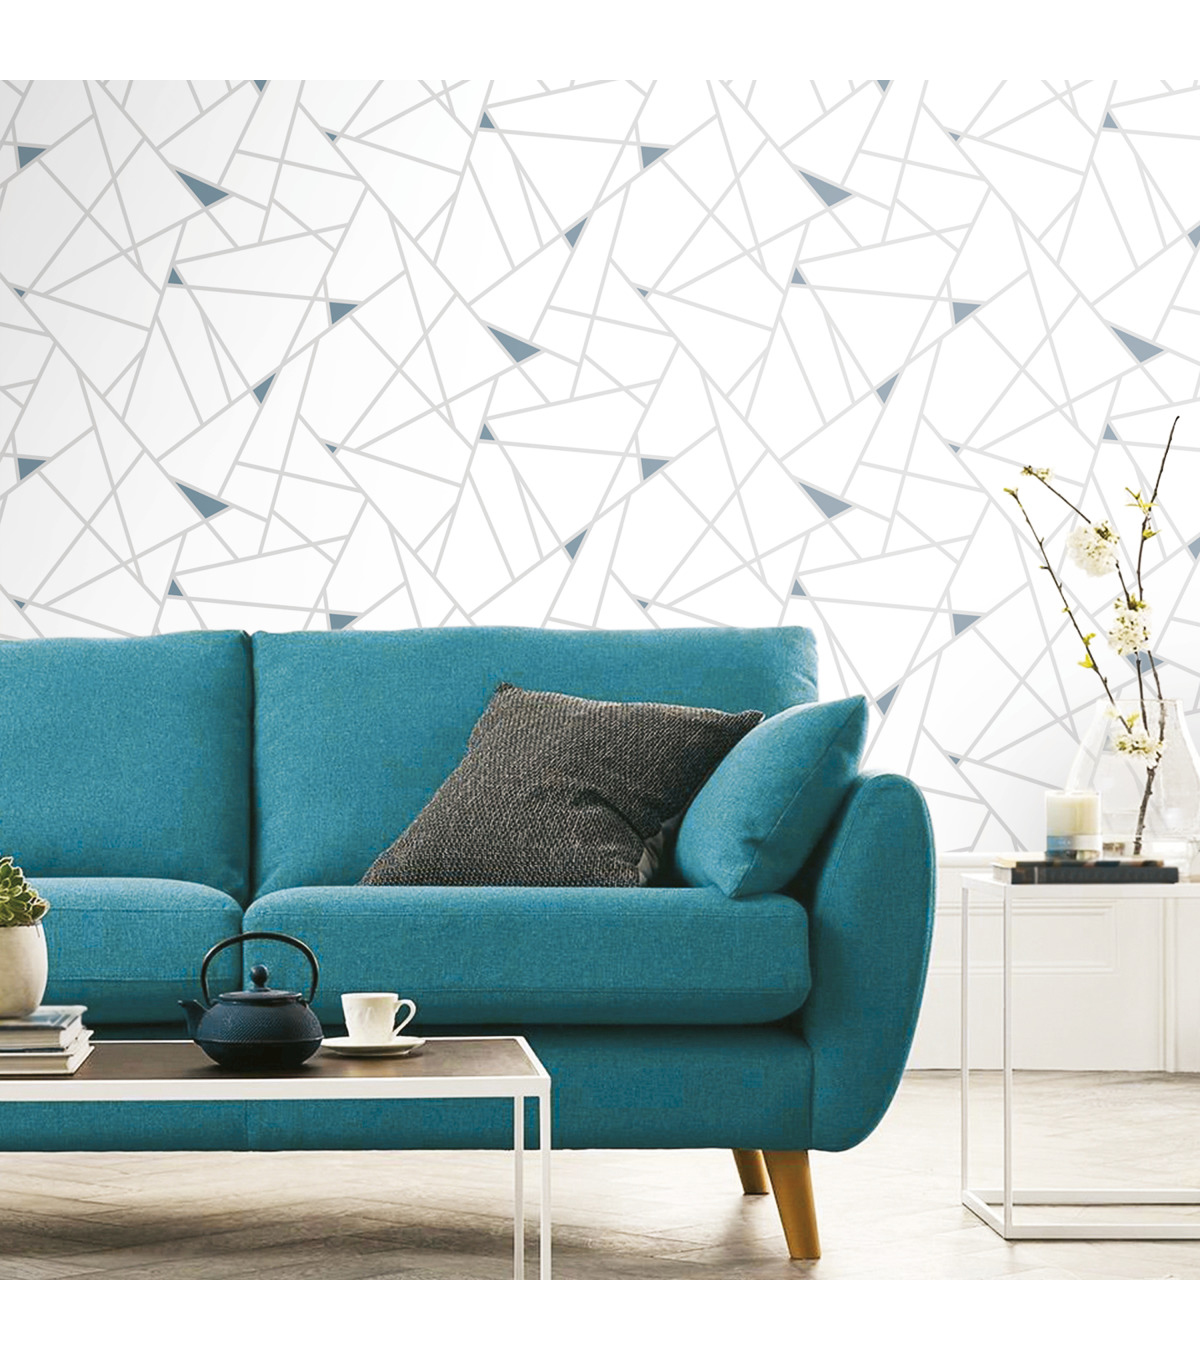 York Wallcoverings Wallpaper-Teal Fracture